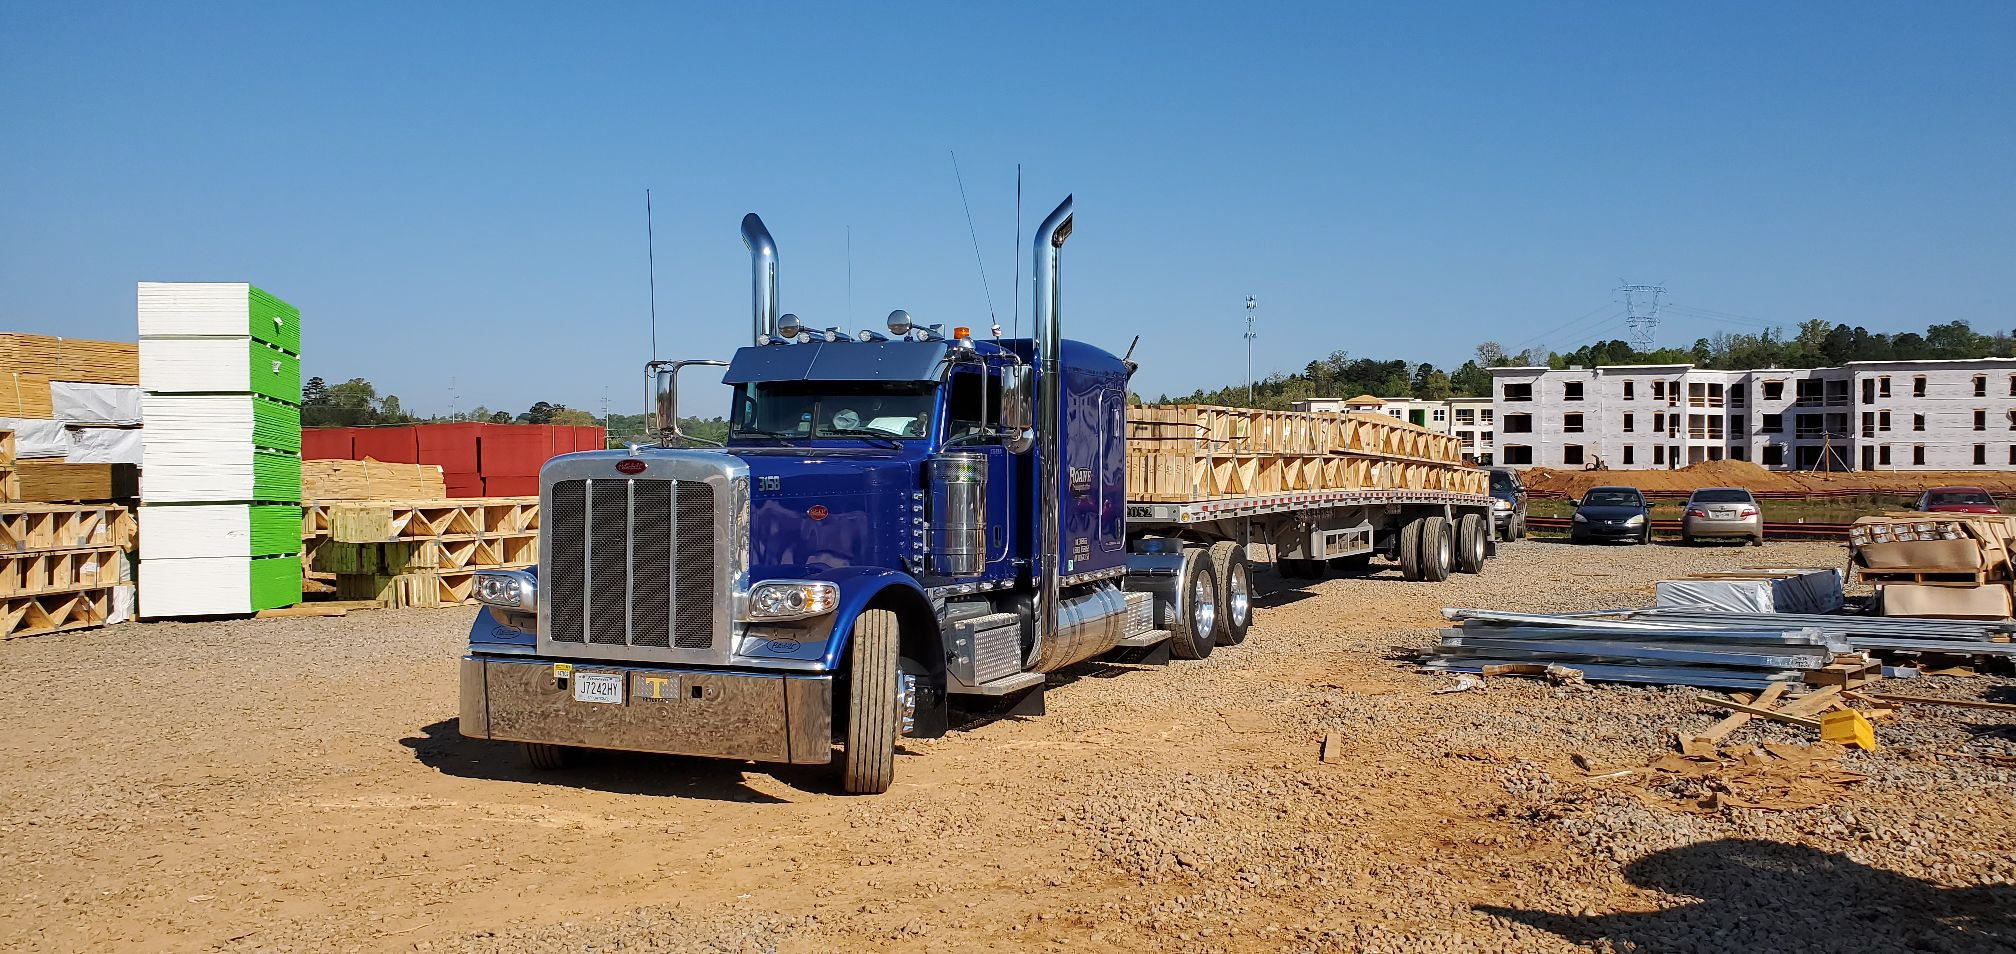 A roane transportation flatbed truck hauling something to a construction site